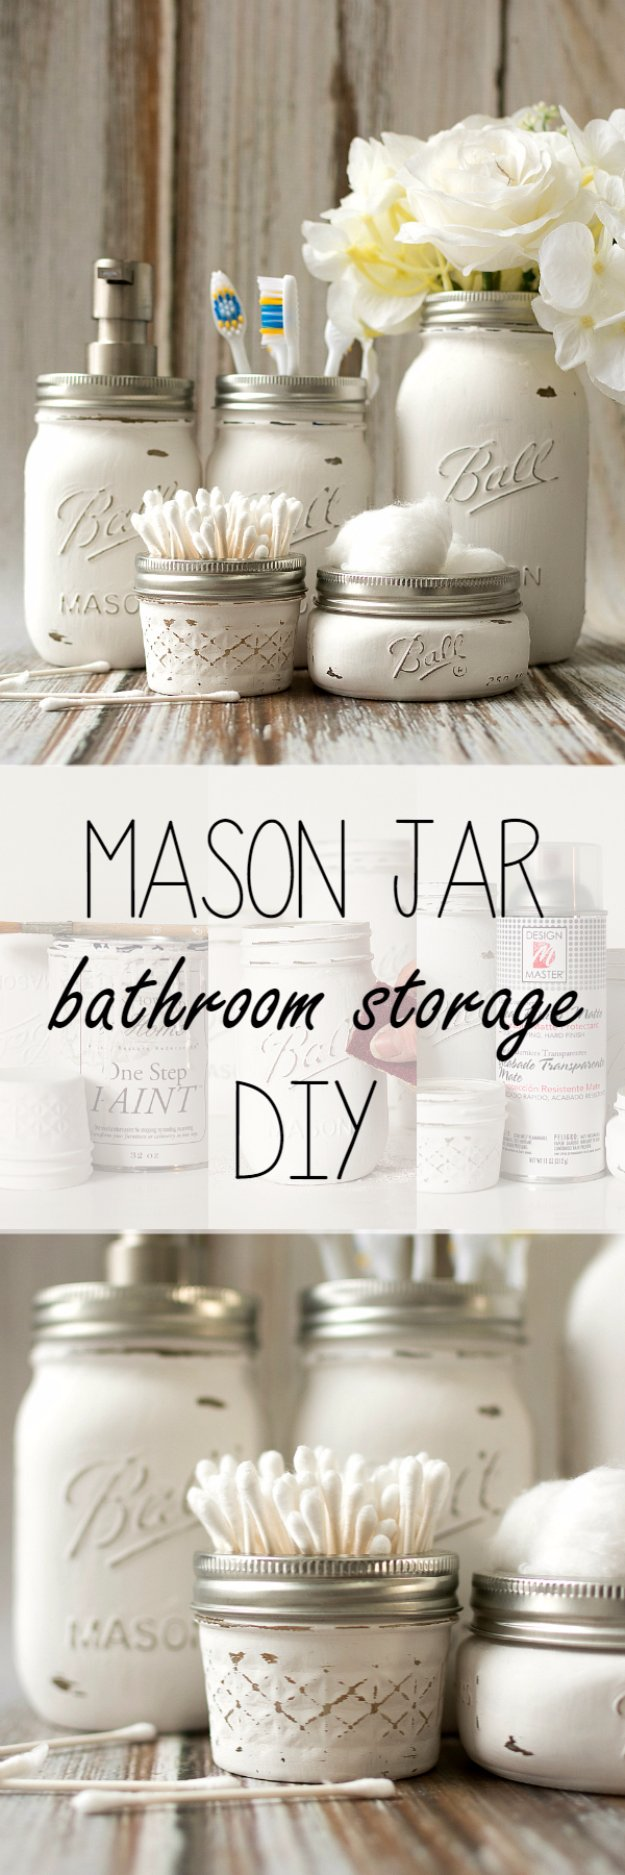 diy bathroom decorating ideas d 233 co diy pour la salle de bain 15 id 233 es laissez vous 17346